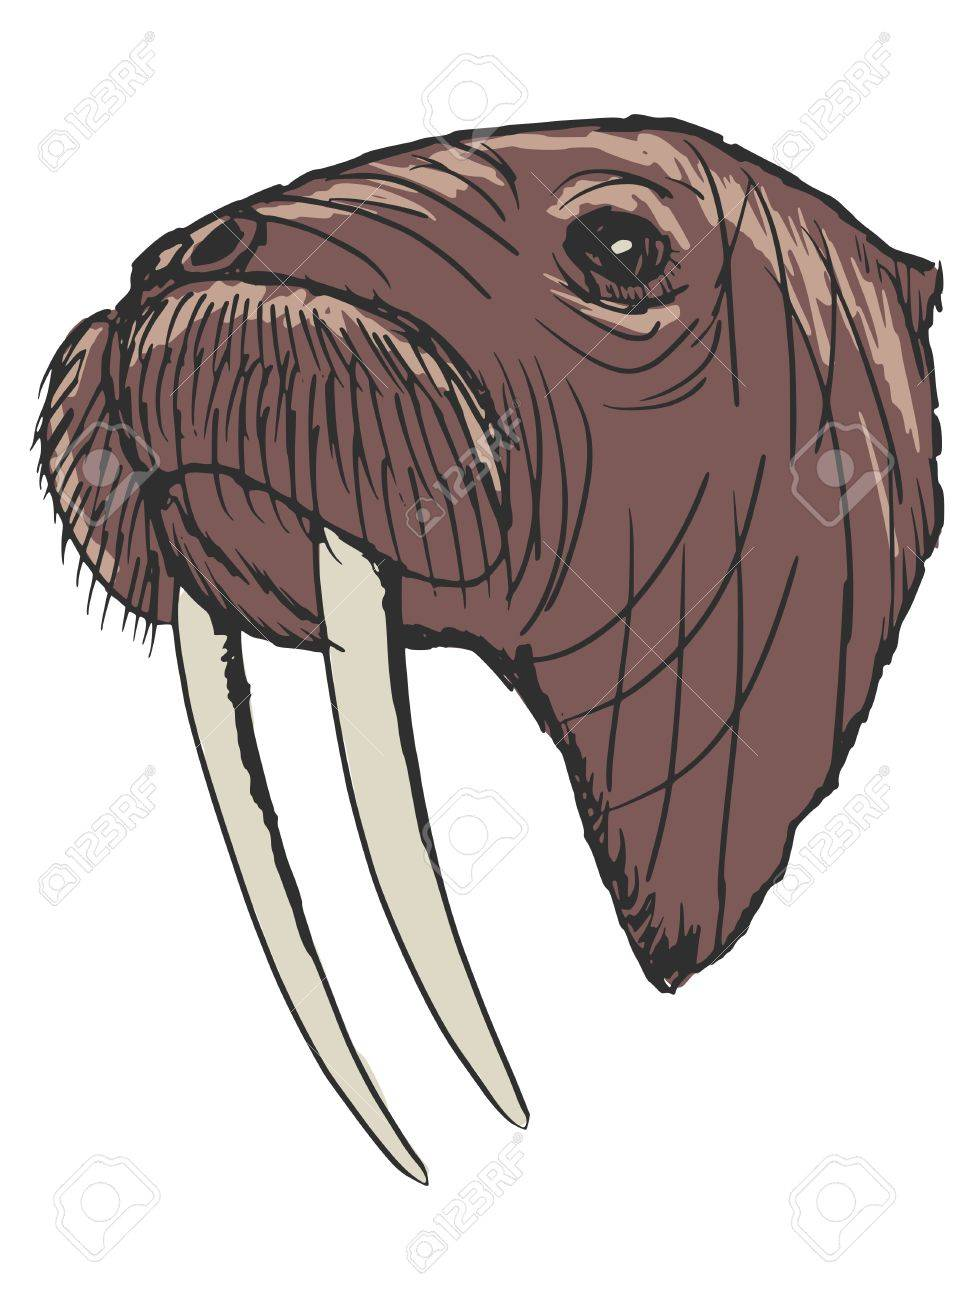 hand drawn sketch cartoon illustration of walrus royalty free